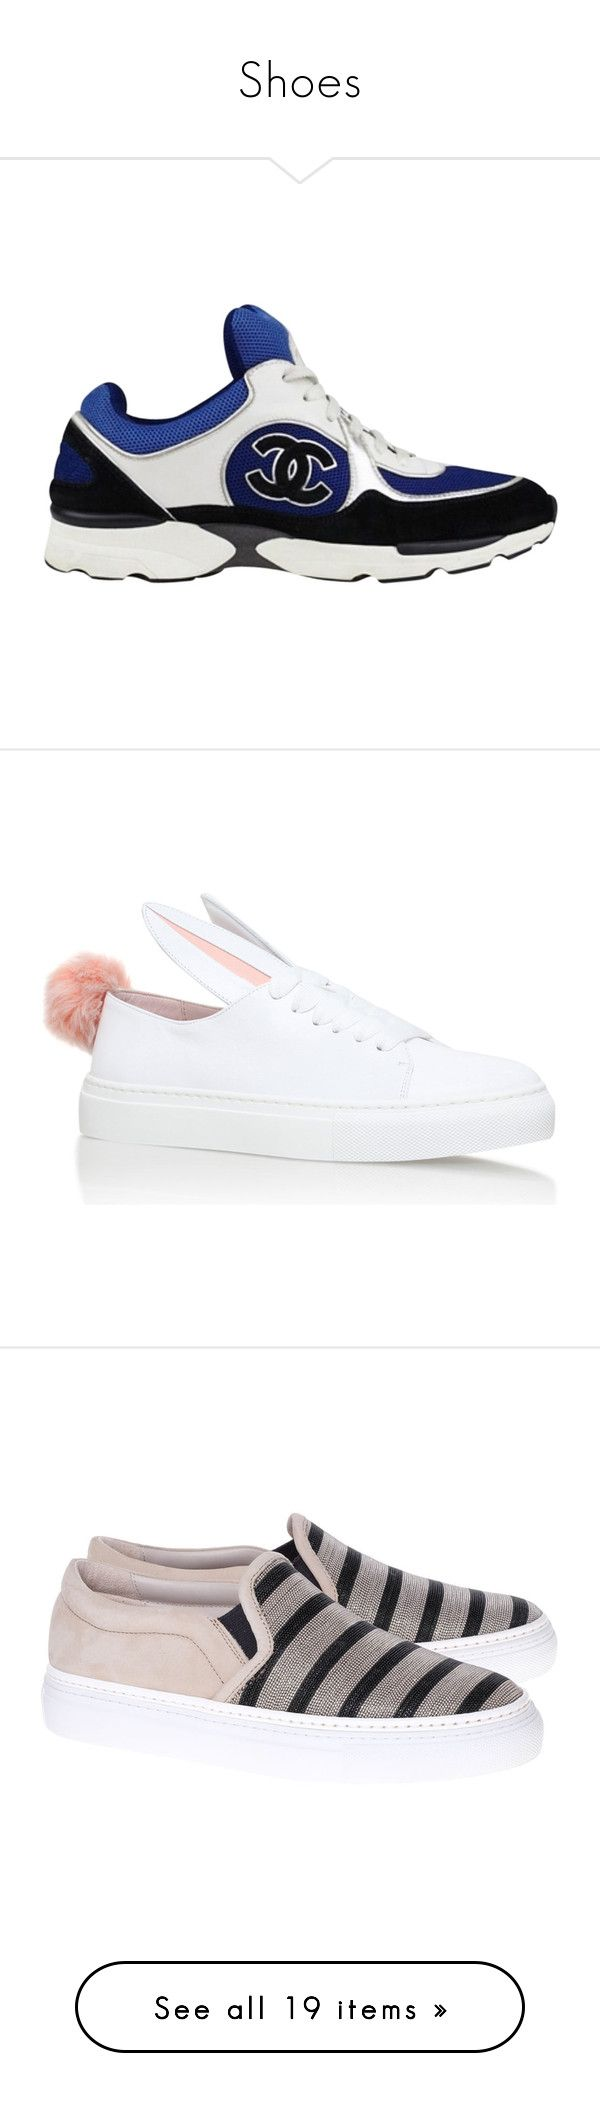 """""""Shoes"""" by fashionbymgda ❤ liked on Polyvore featuring shoes, sneakers, pink, christian louboutin sneakers, metallic high top sneakers, pink high top sneakers, gold shoes, metallic sneakers, black slip-on shoes and slip-on sneakers"""